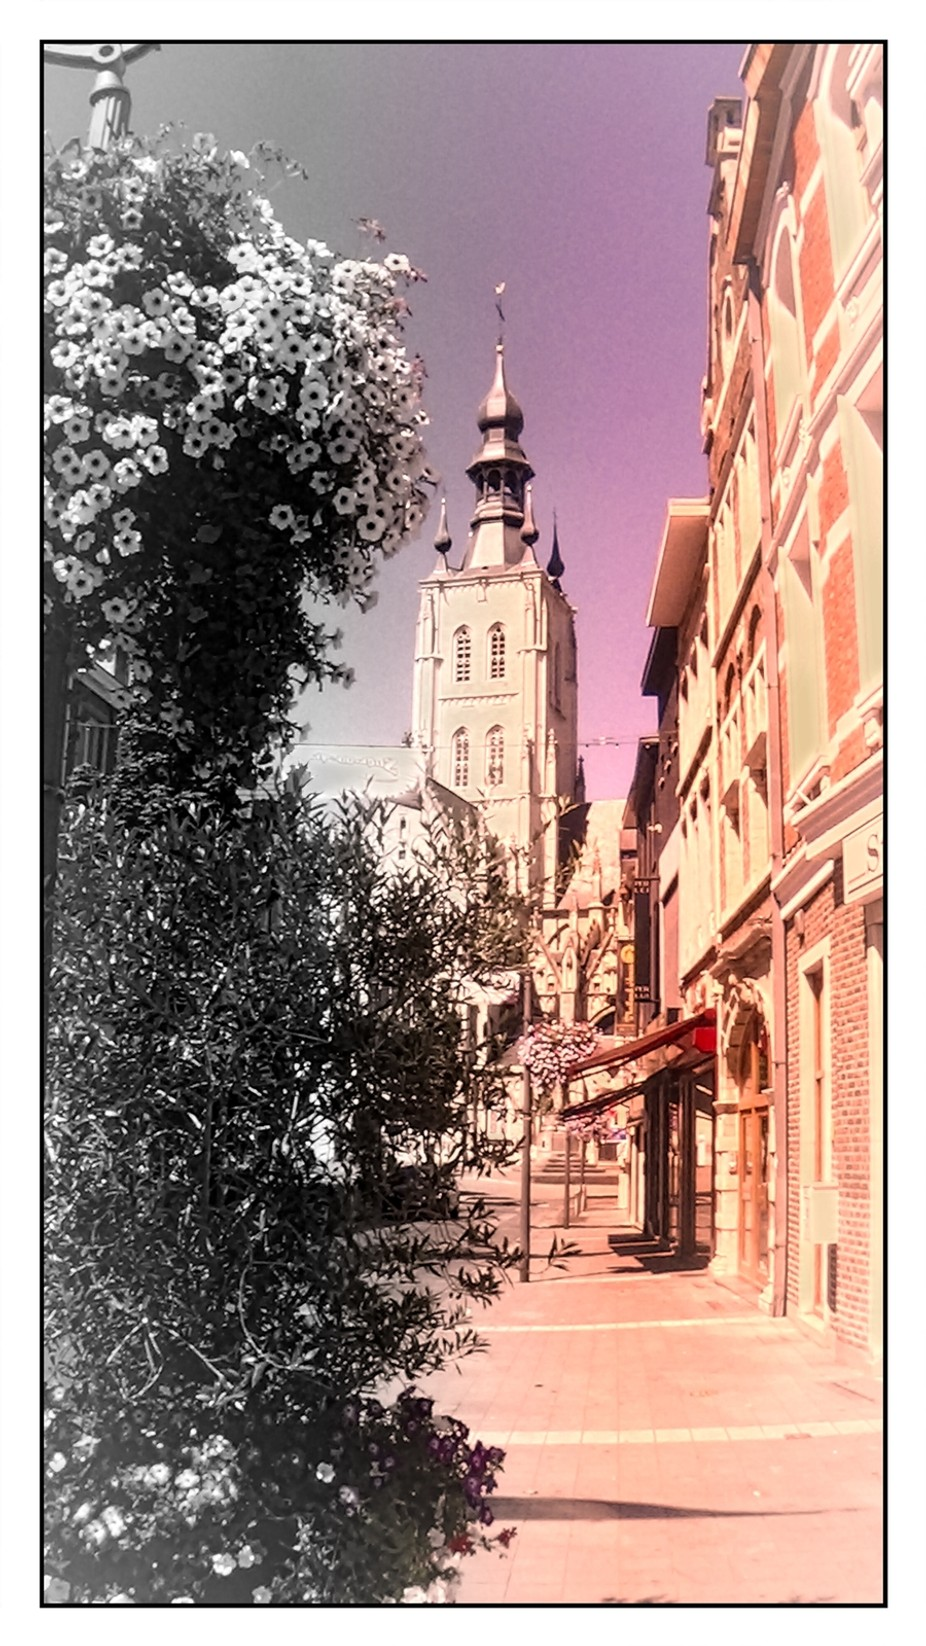 See how beautiful my City Tienen looks like Greetings Theo Herbots